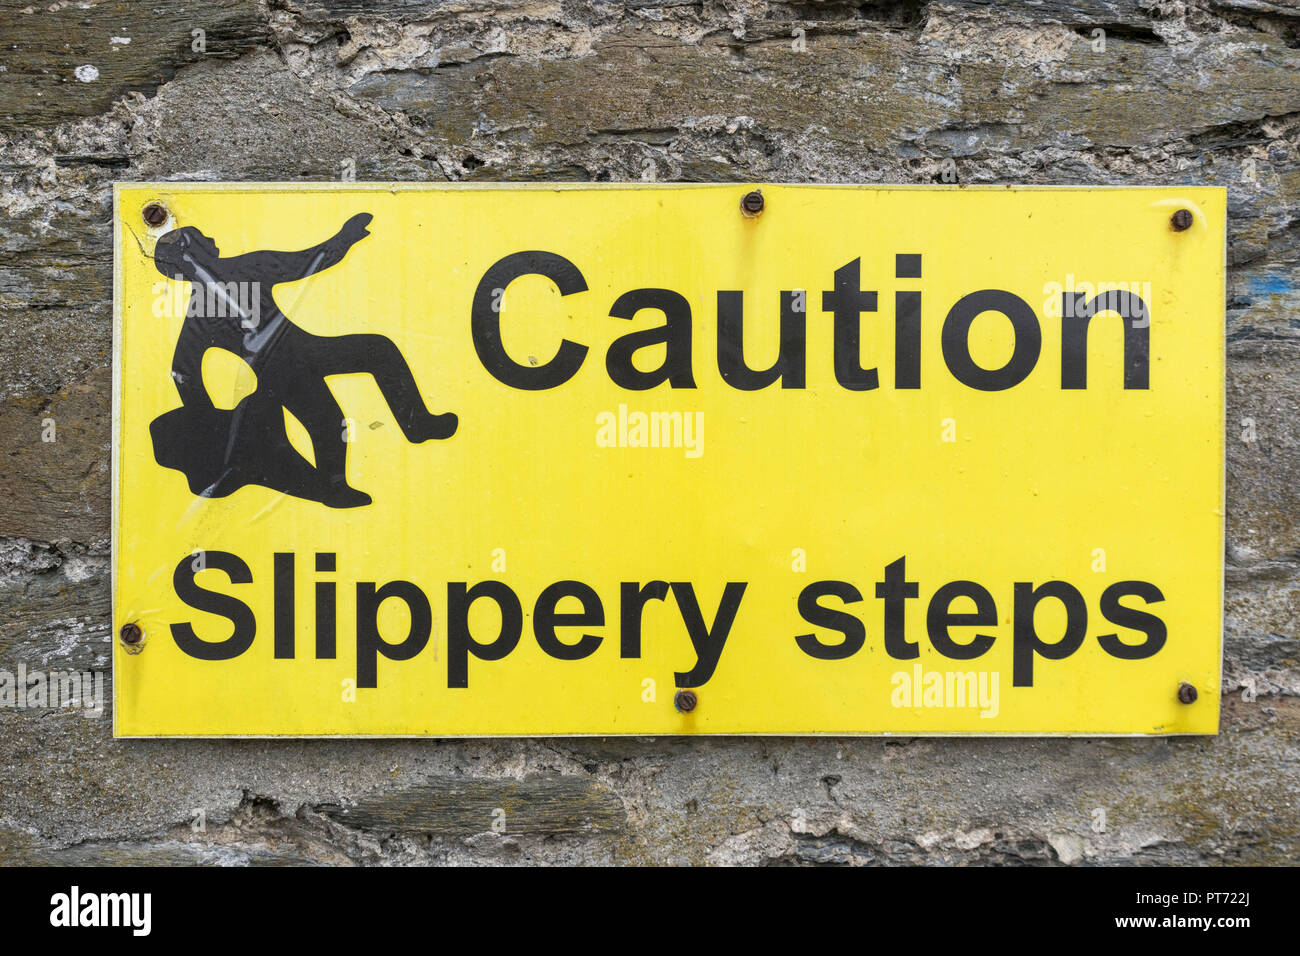 Slippery steps warning sign at Newquay harbour. - Stock Image